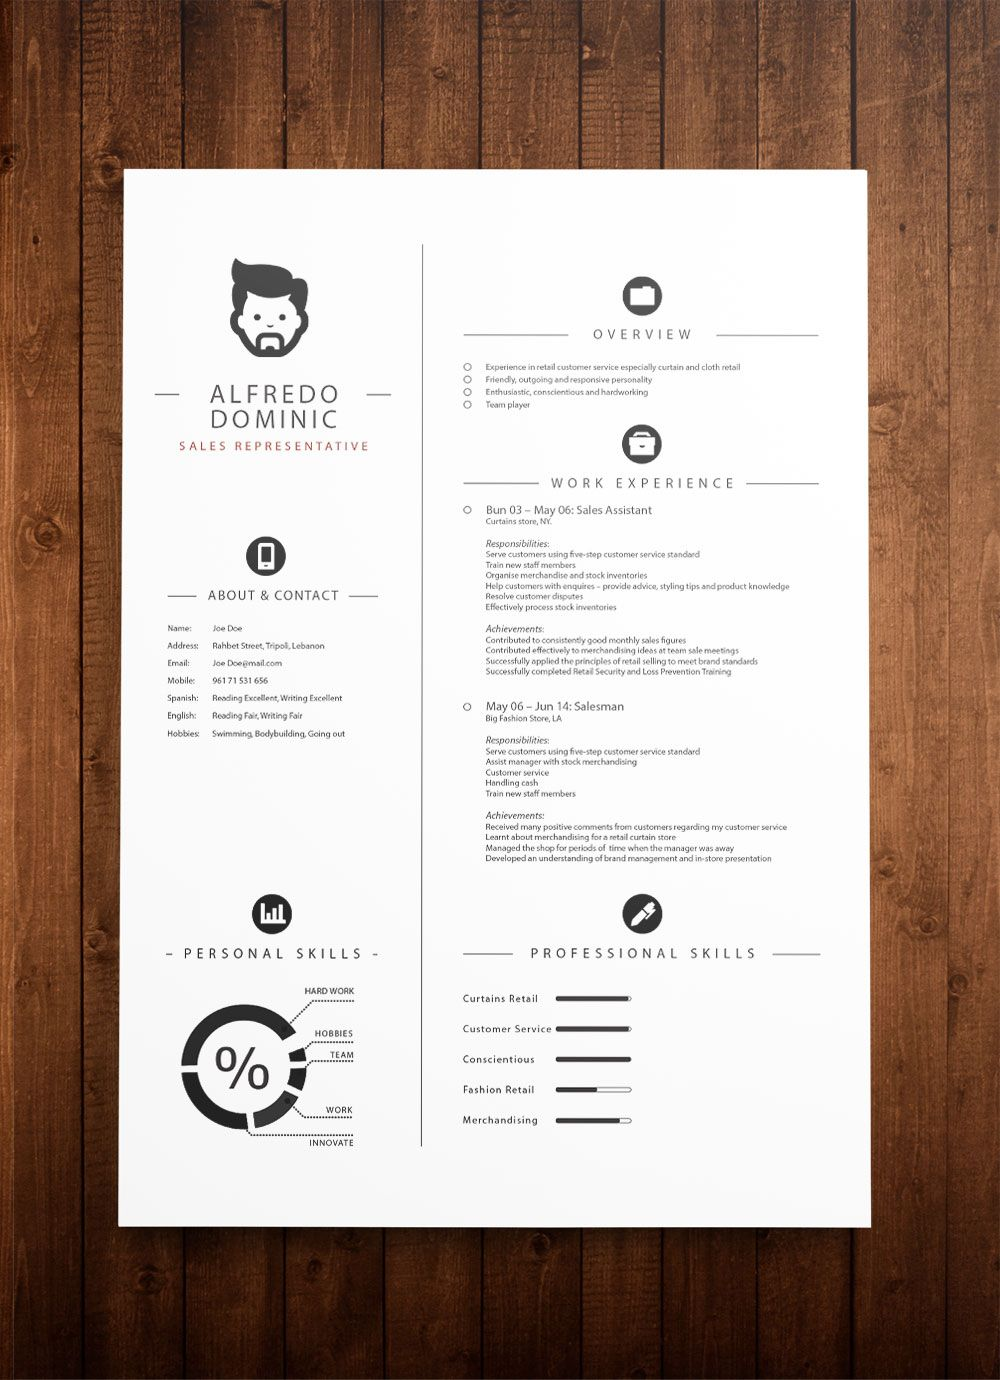 pretty nice and simple curriculum vitae template this resume is created in photoshop and easy to work with so go check it out and enjoy